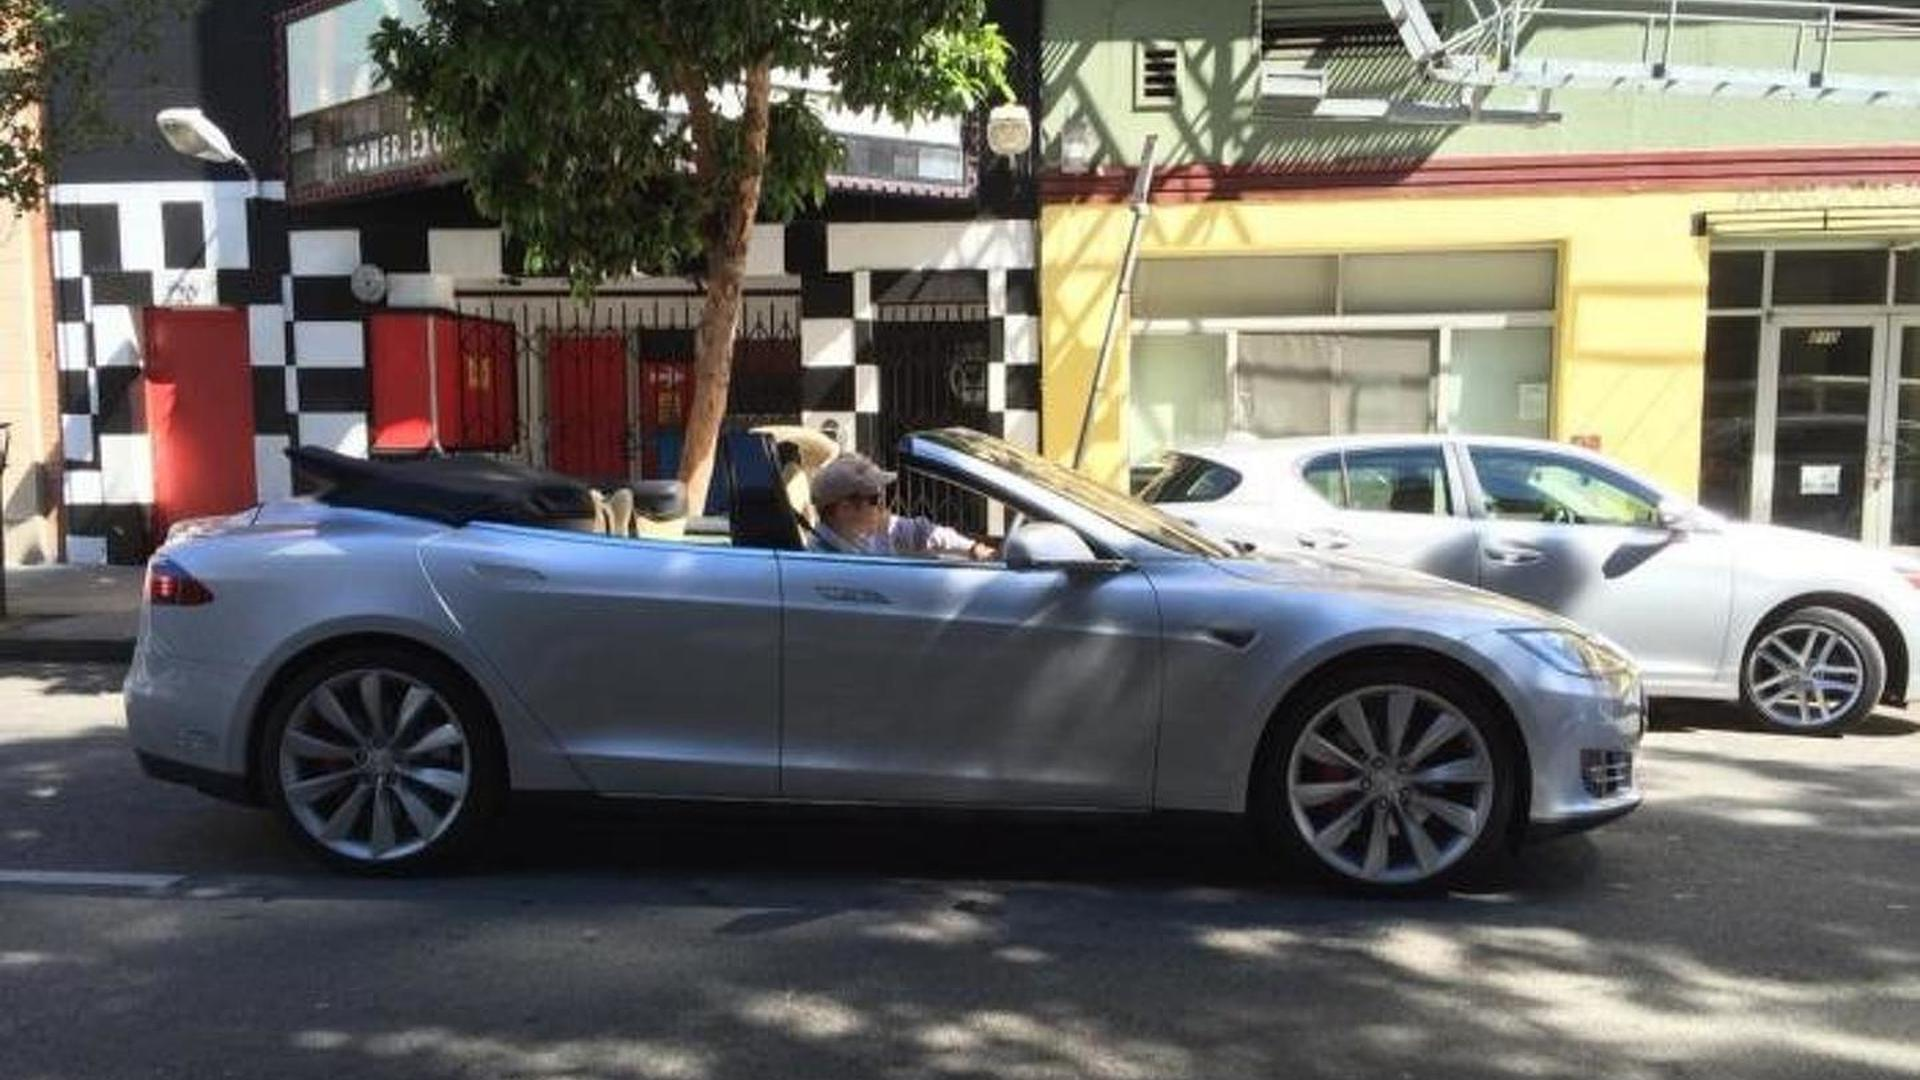 Tesla Model S Convertible listed on eBay for $125,000